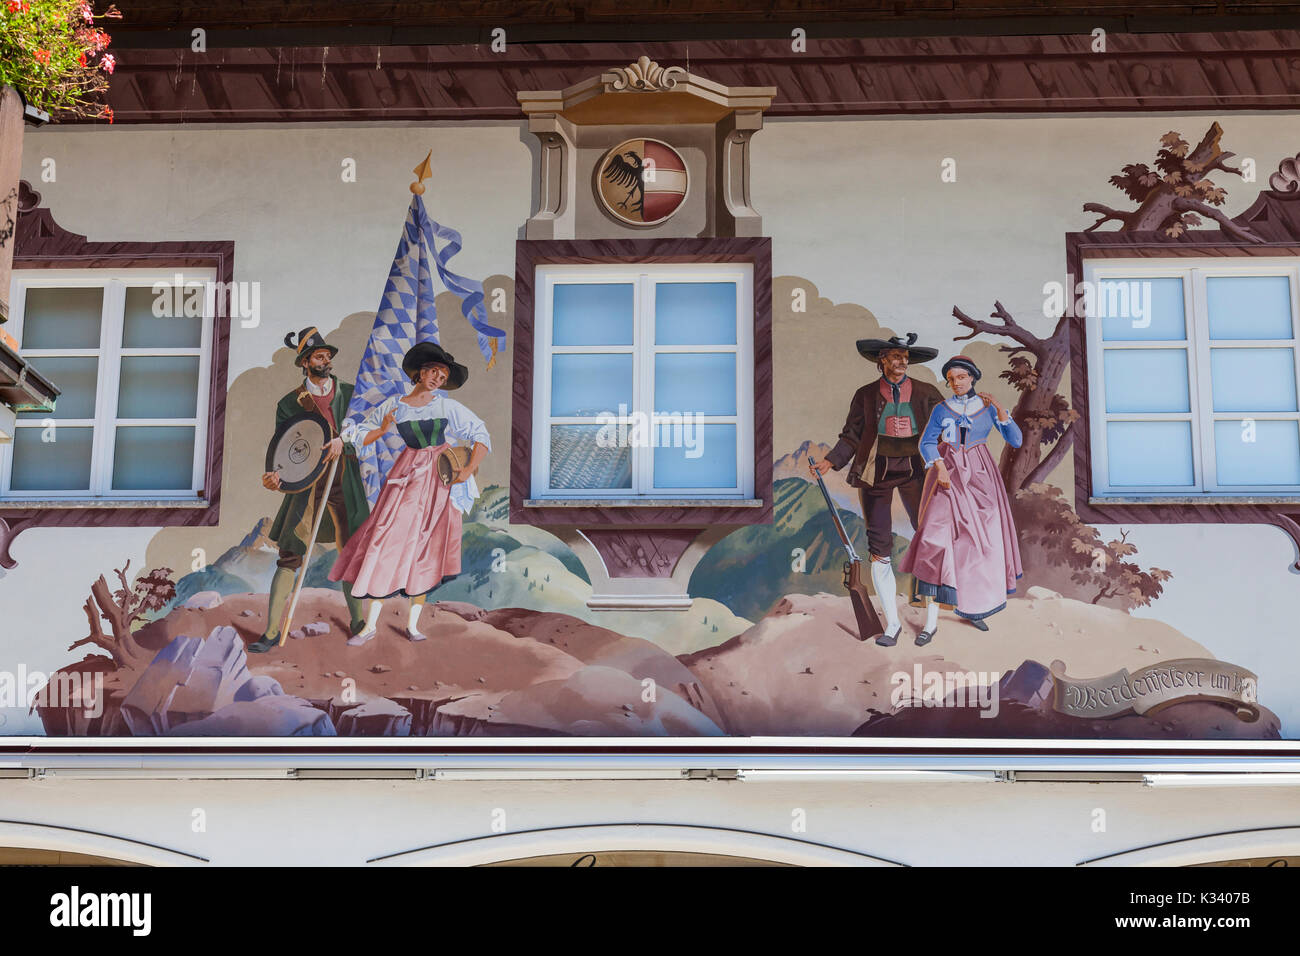 Paintings and frescoes decorate the typical houses Garmisch Partenkirchen Oberbayern region Bavaria Germany Europe - Stock Image